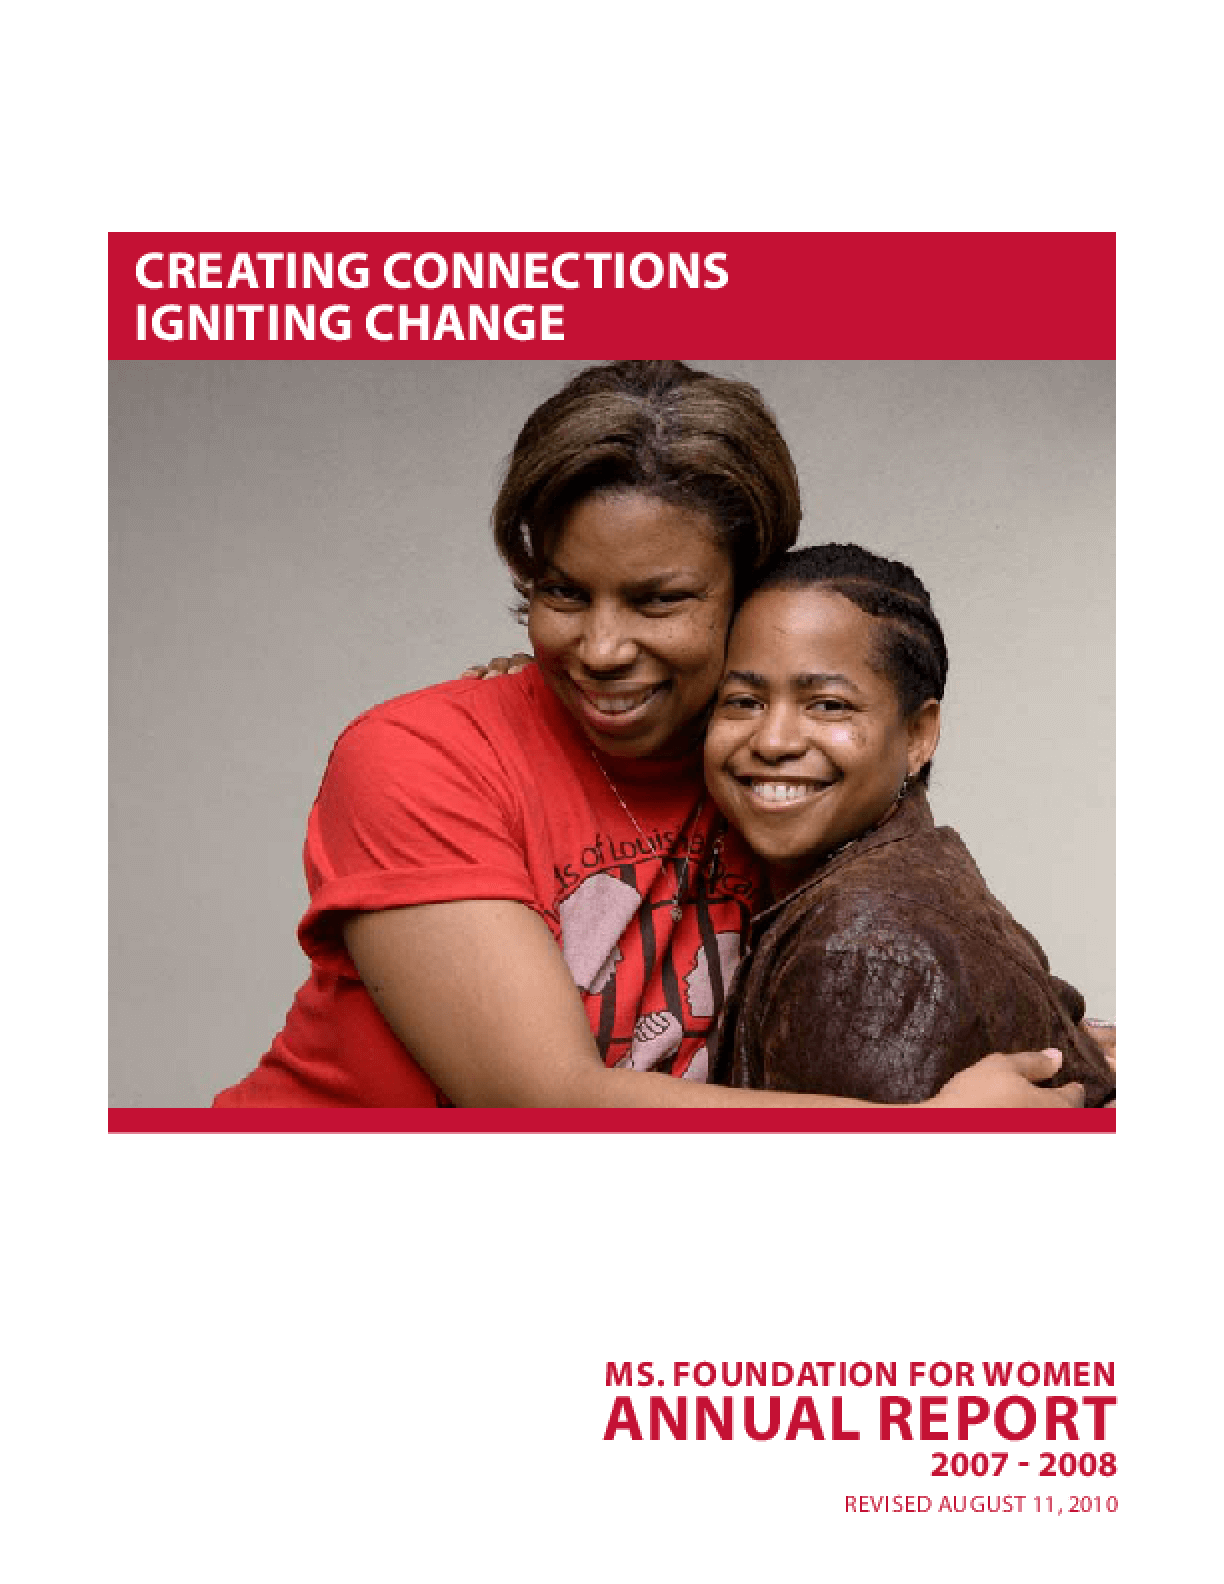 Creating Connections, Igniting Change: Ms. Foundation Annual Report 2007-2008